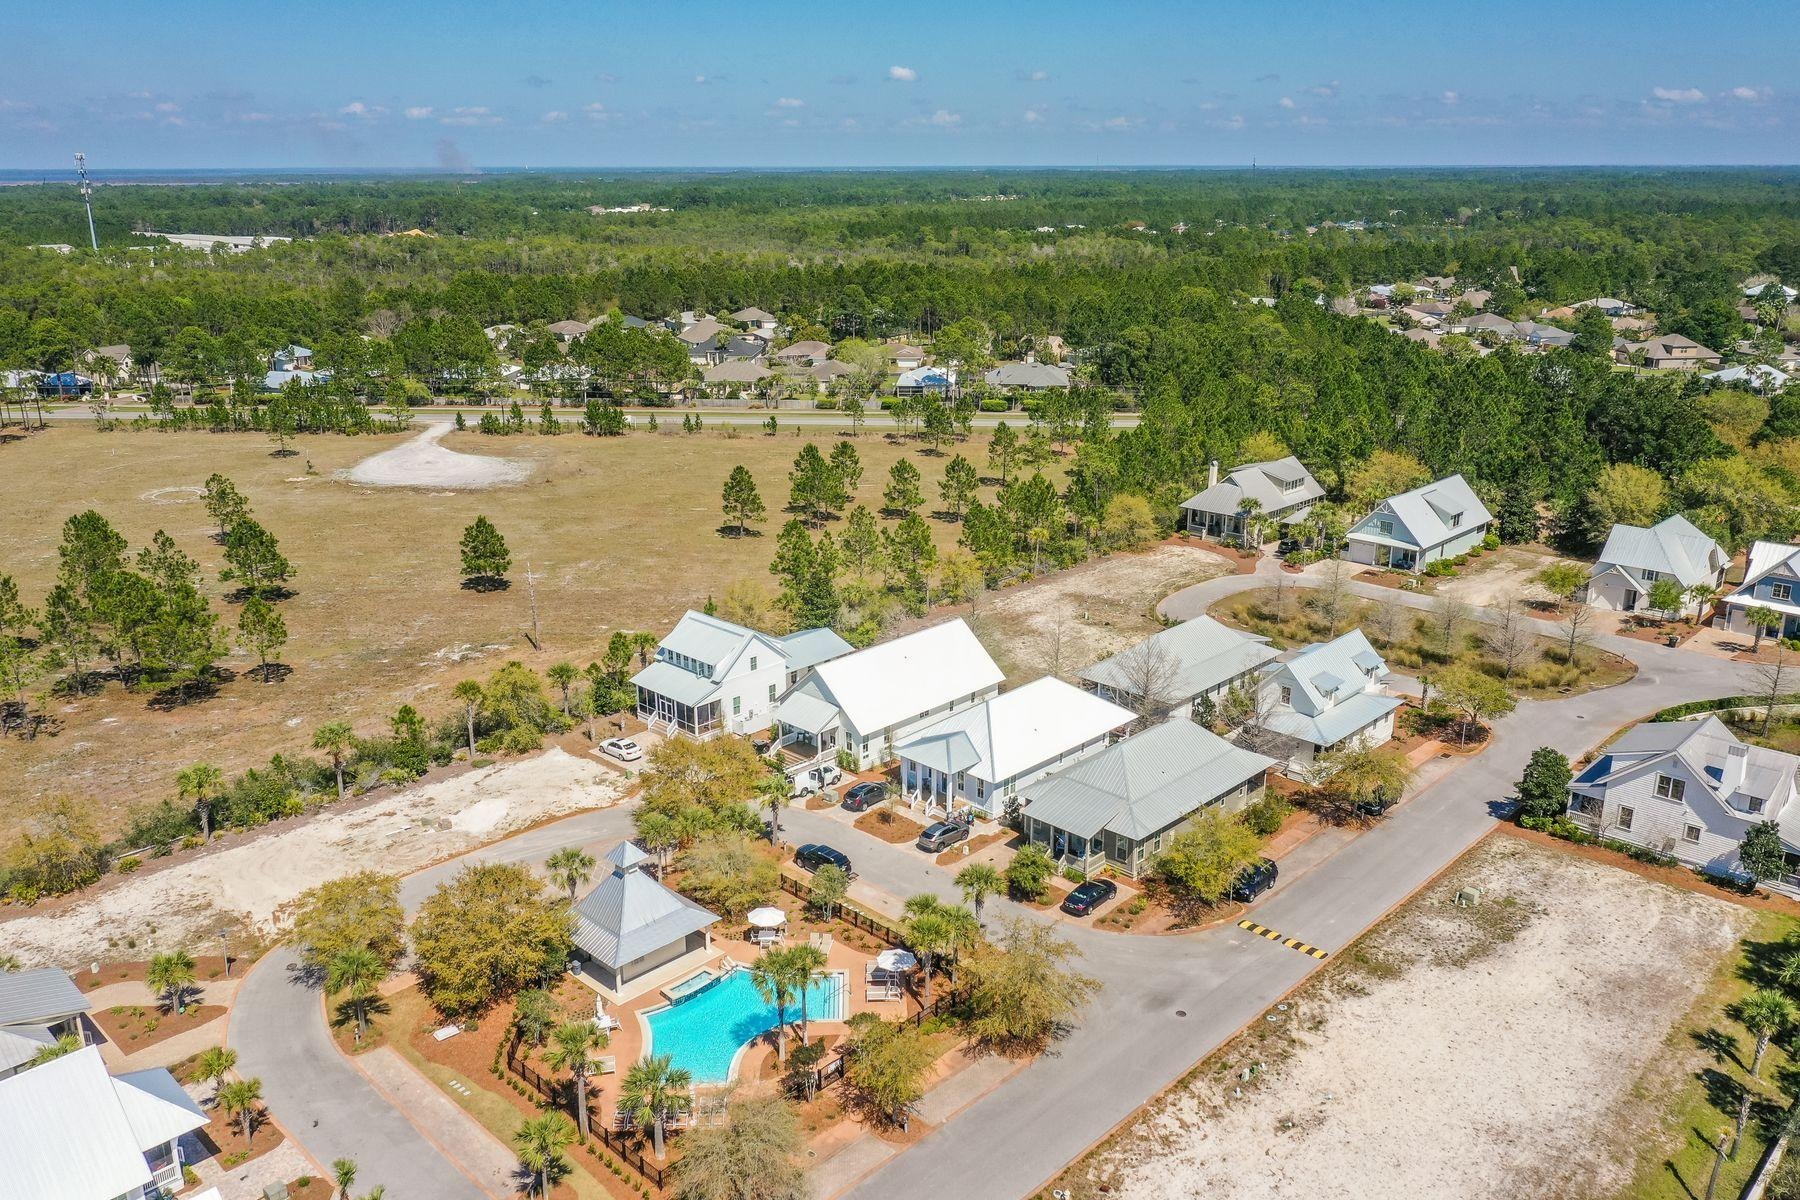 A 3 Bedroom 2 Bedroom Cypress Dunes Home